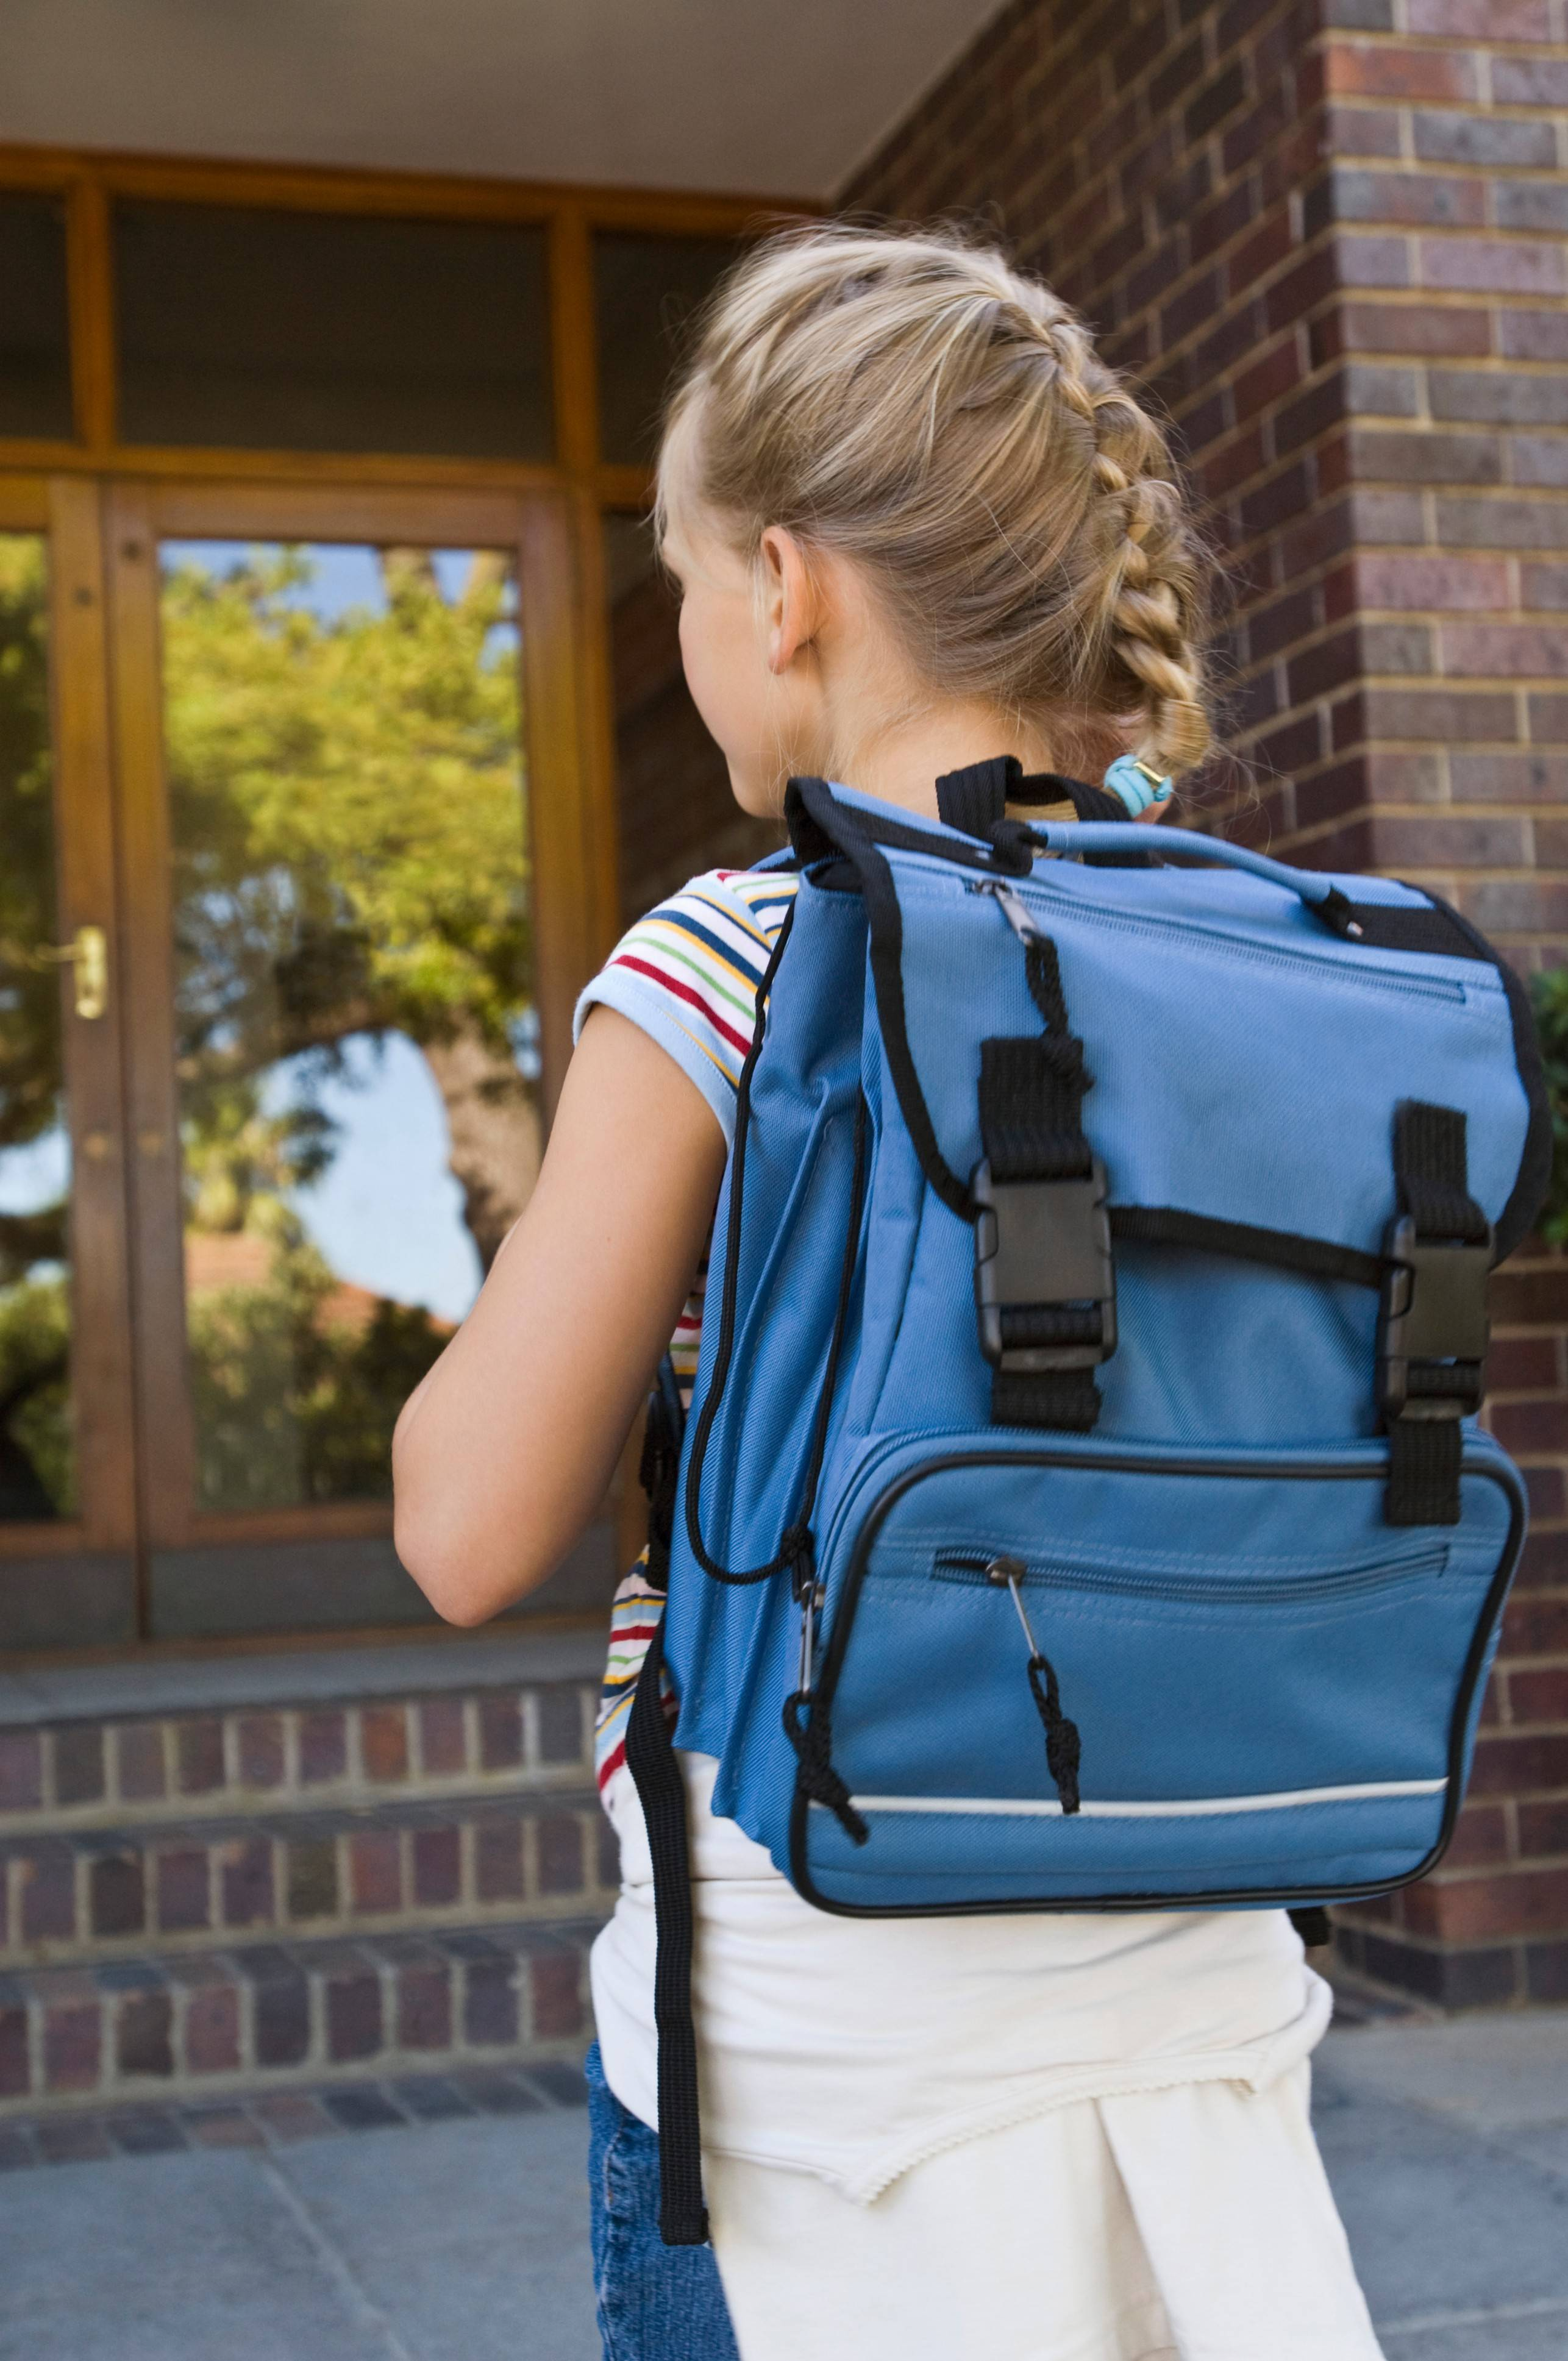 Backpacks should not weigh more than 10 to 20 percent of a child's body weight.